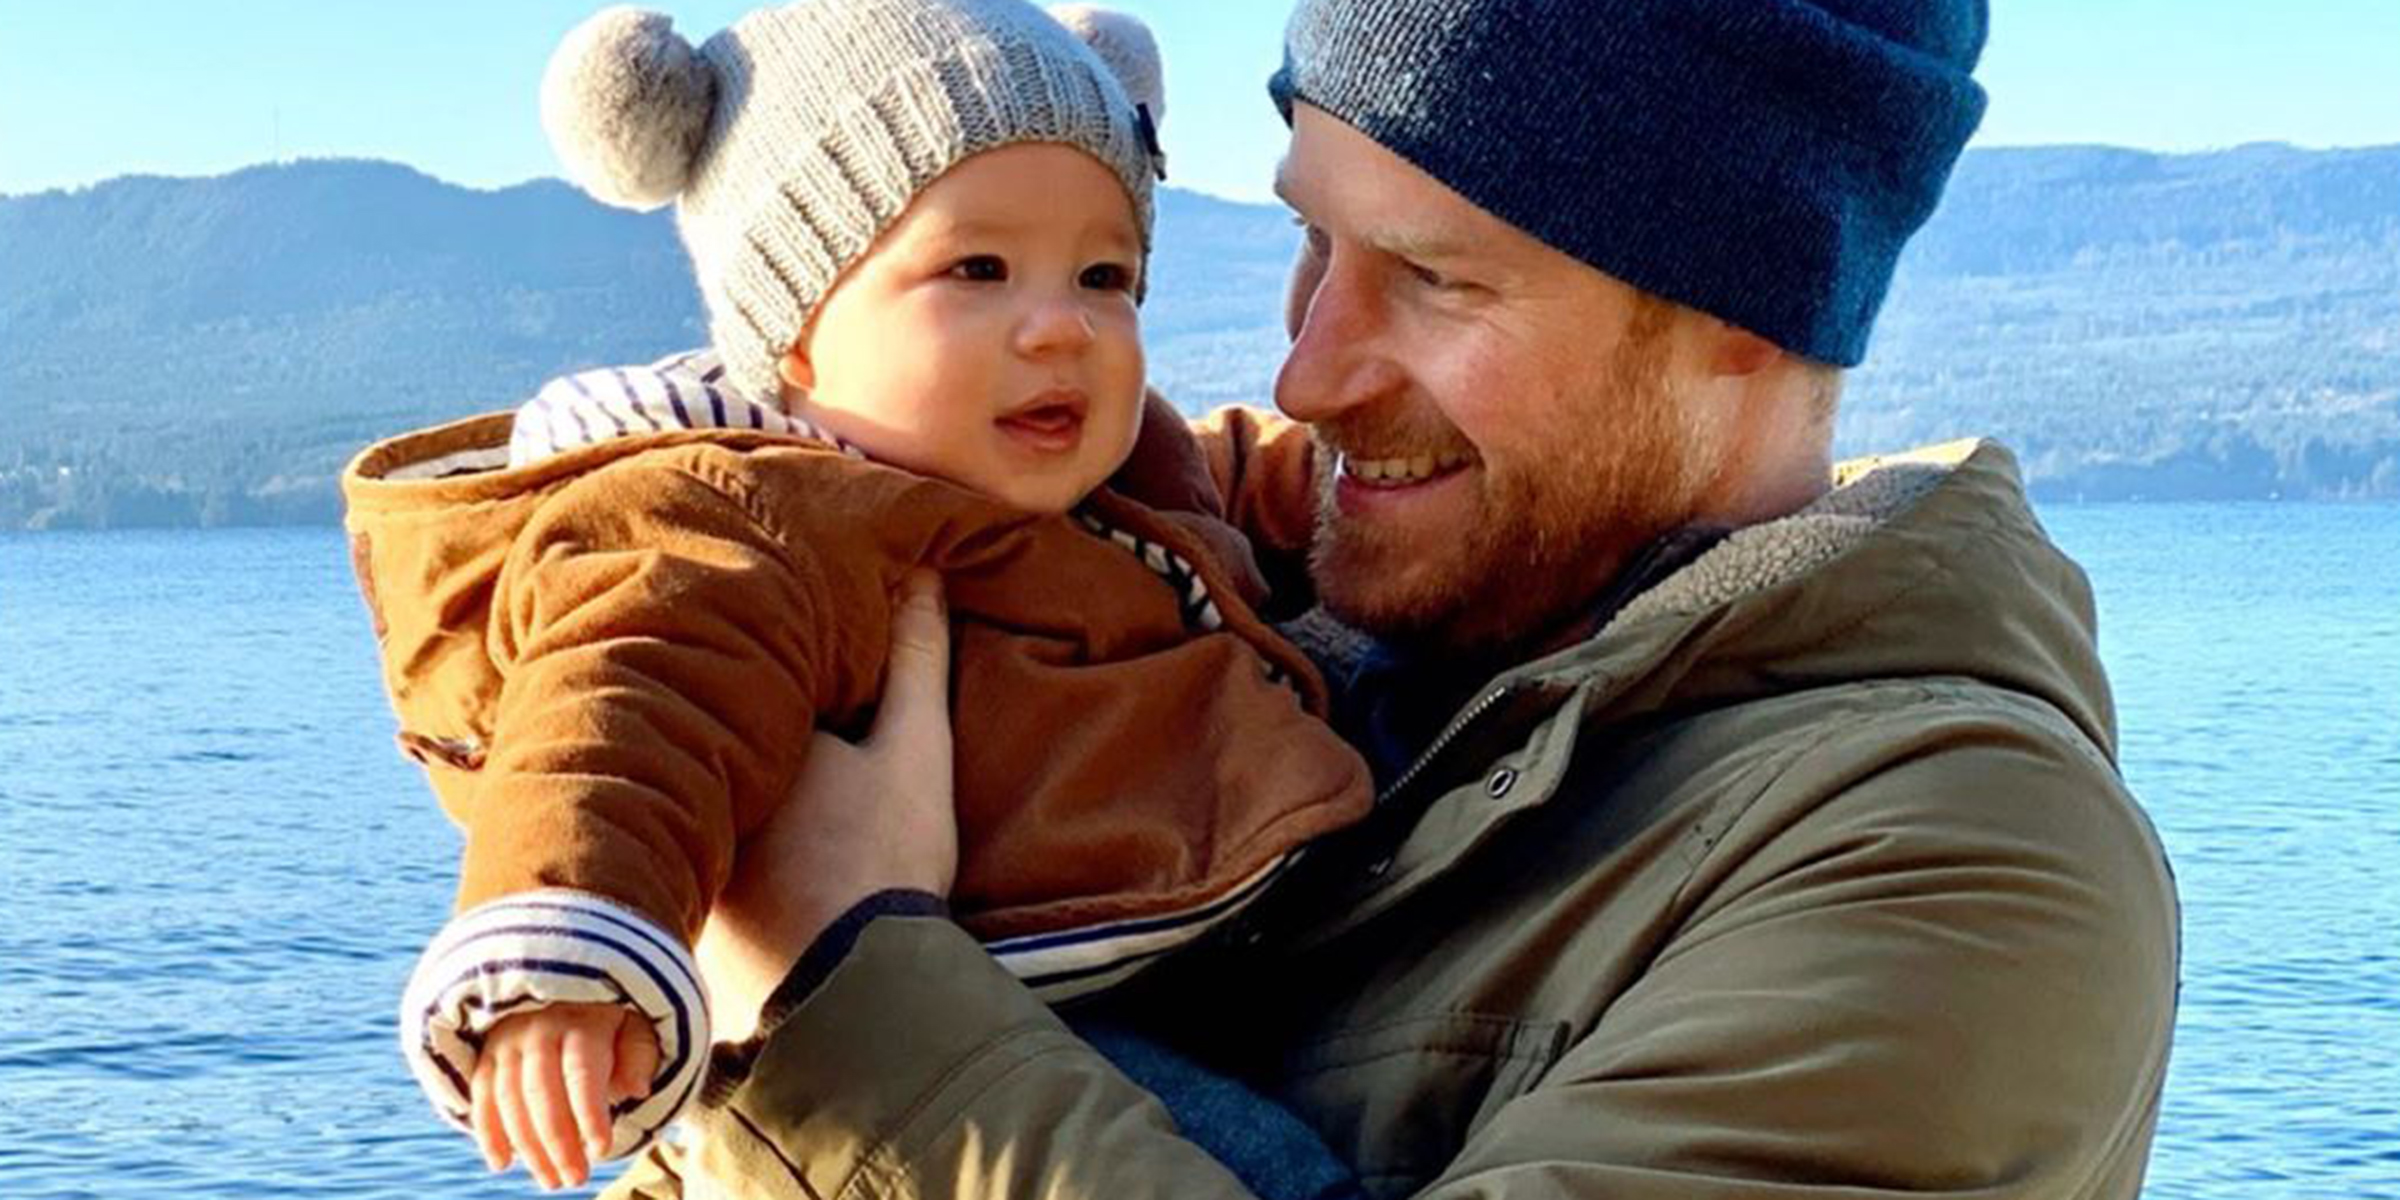 Prince Harry reveals baby Archie just saw snow for the 1st time